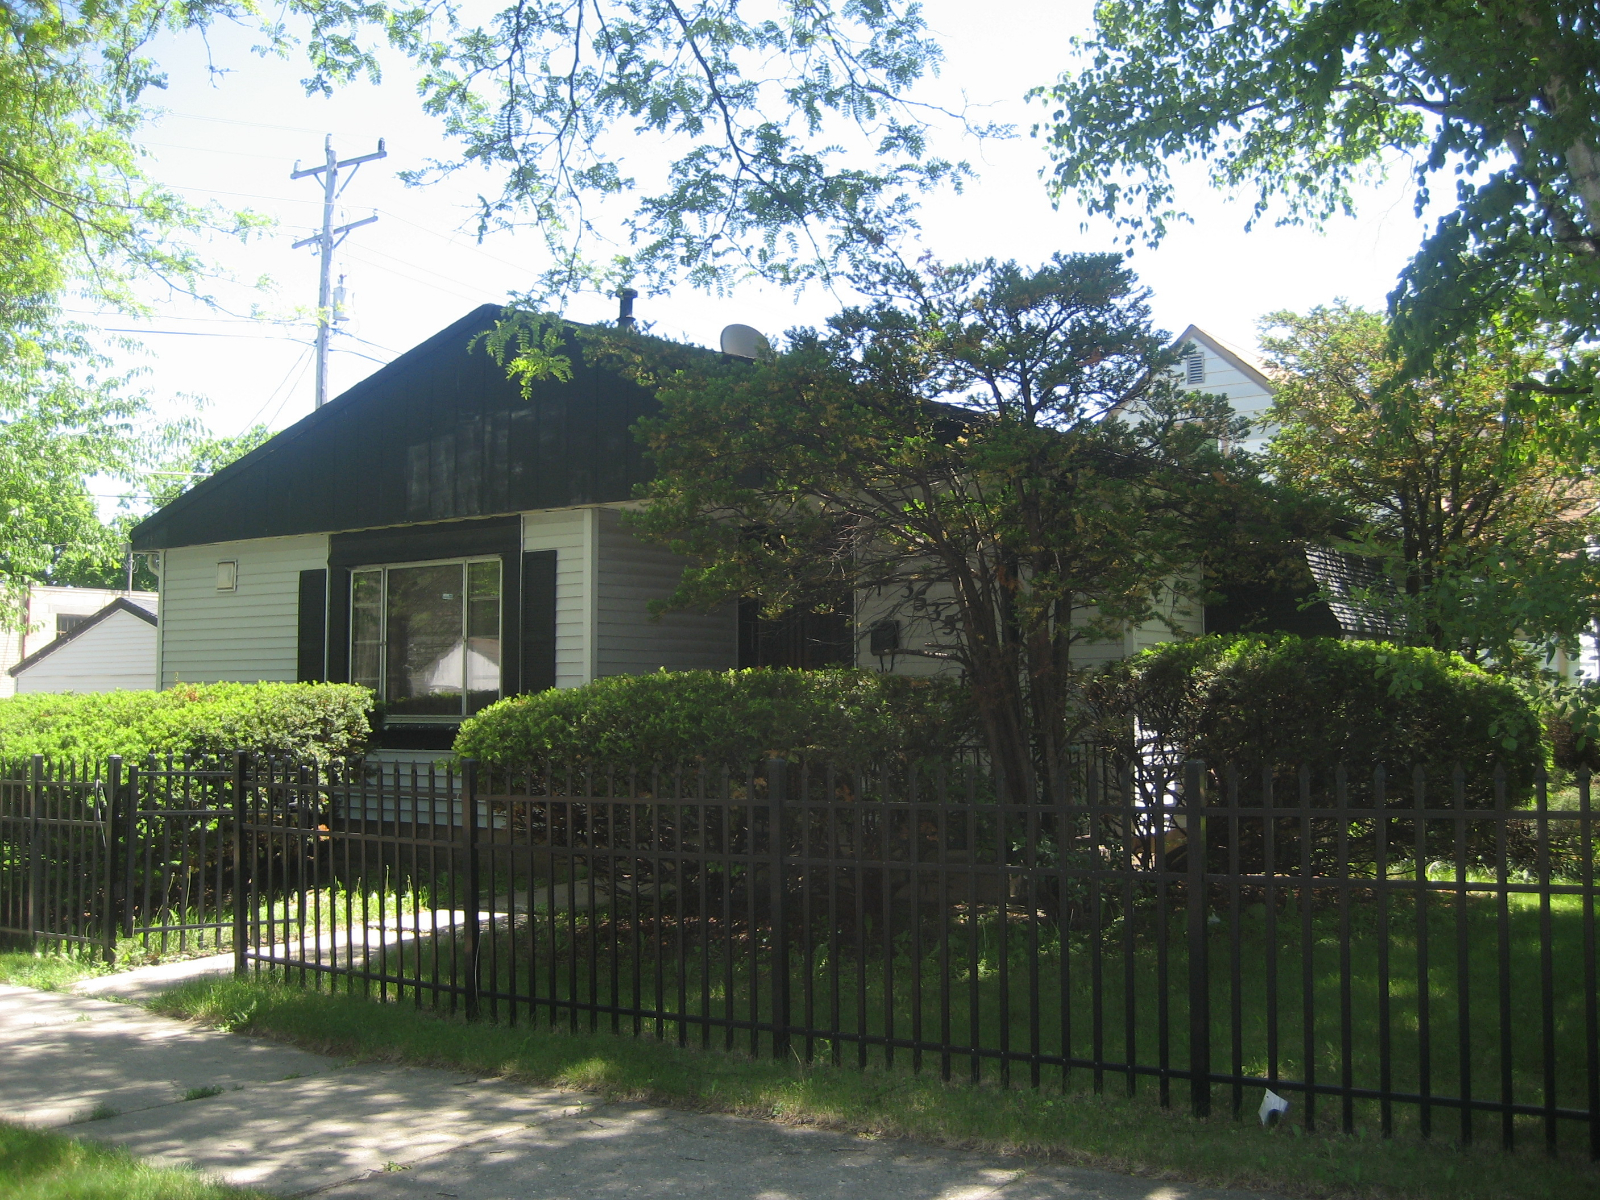 3535 W. Marion St.